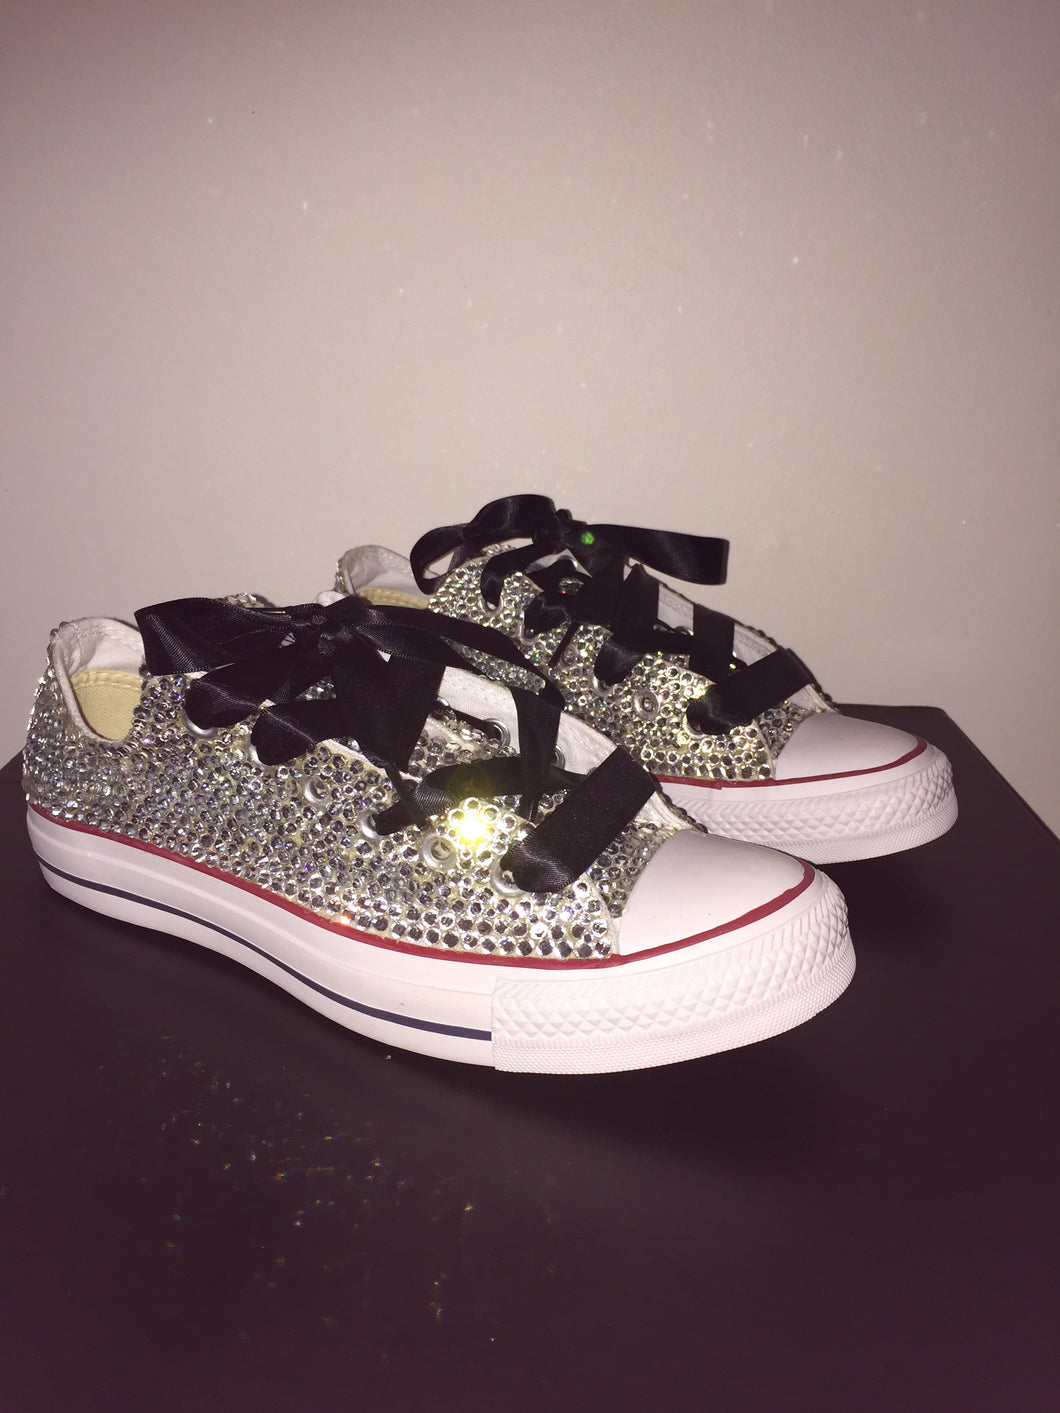 ... All Star Converse With Crystal Diamonds With Black Ribbon Lace Combo ... 263d377e6